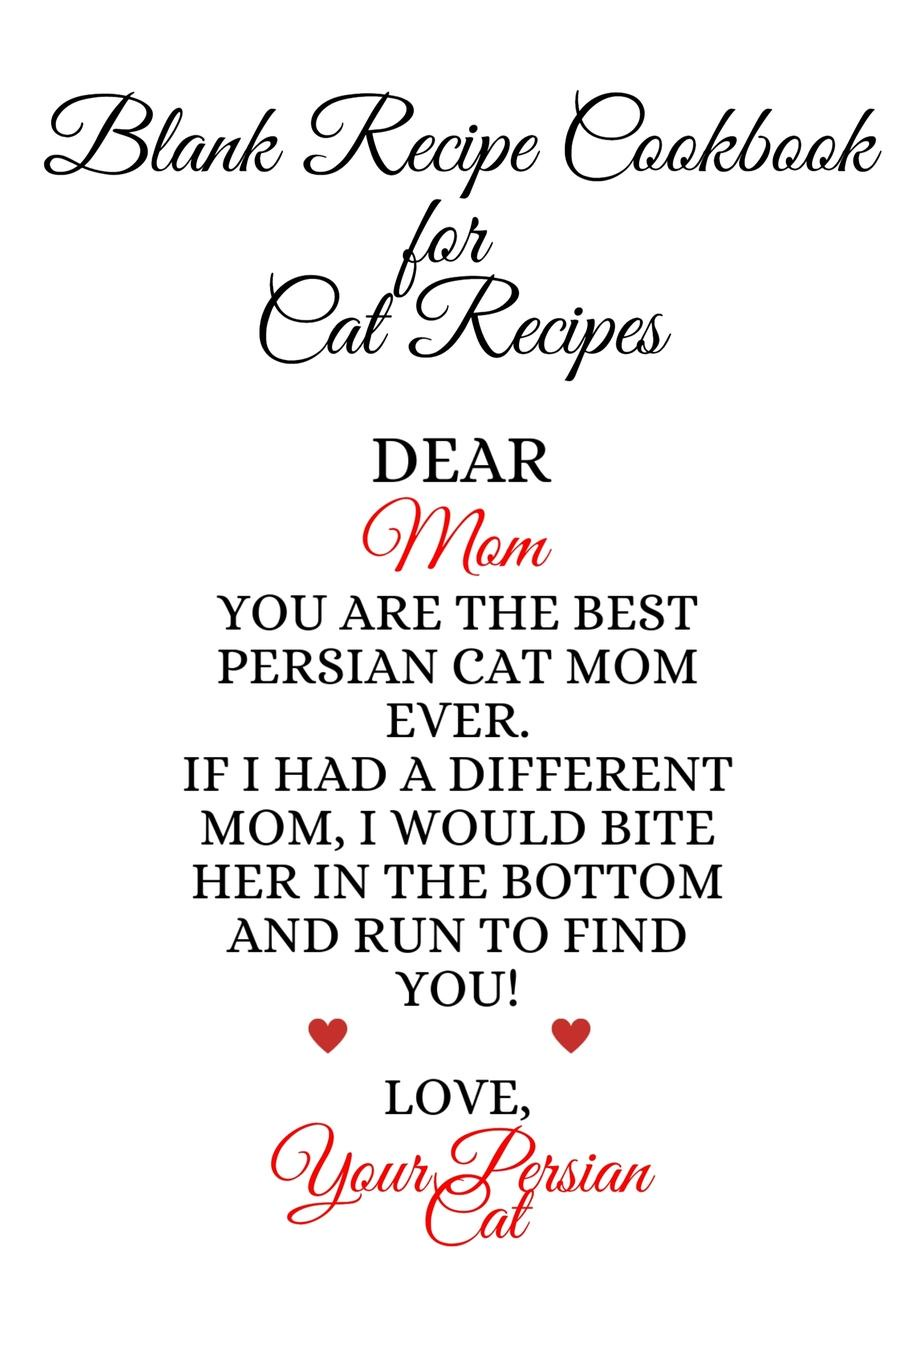 Jennifer Wellington Blank Recipe Book For Cat Recipes. Best Persian Cat Mom Ever Cookbok Journal To Write In Favorite Cat Recipes, Notes, Quotes, Stories Of Cats - Cute Kitty Recipe Book Gift For Mother's Day From Daughter, Son, Kid, Hubby, BF, Stepson - Notepad, 6x9... journal jungle publishing my recipe book 100 recipe pages conversion tables quotes and more make your own cookbook using this blank recipe book 8 x 10 inches pink purple and orange